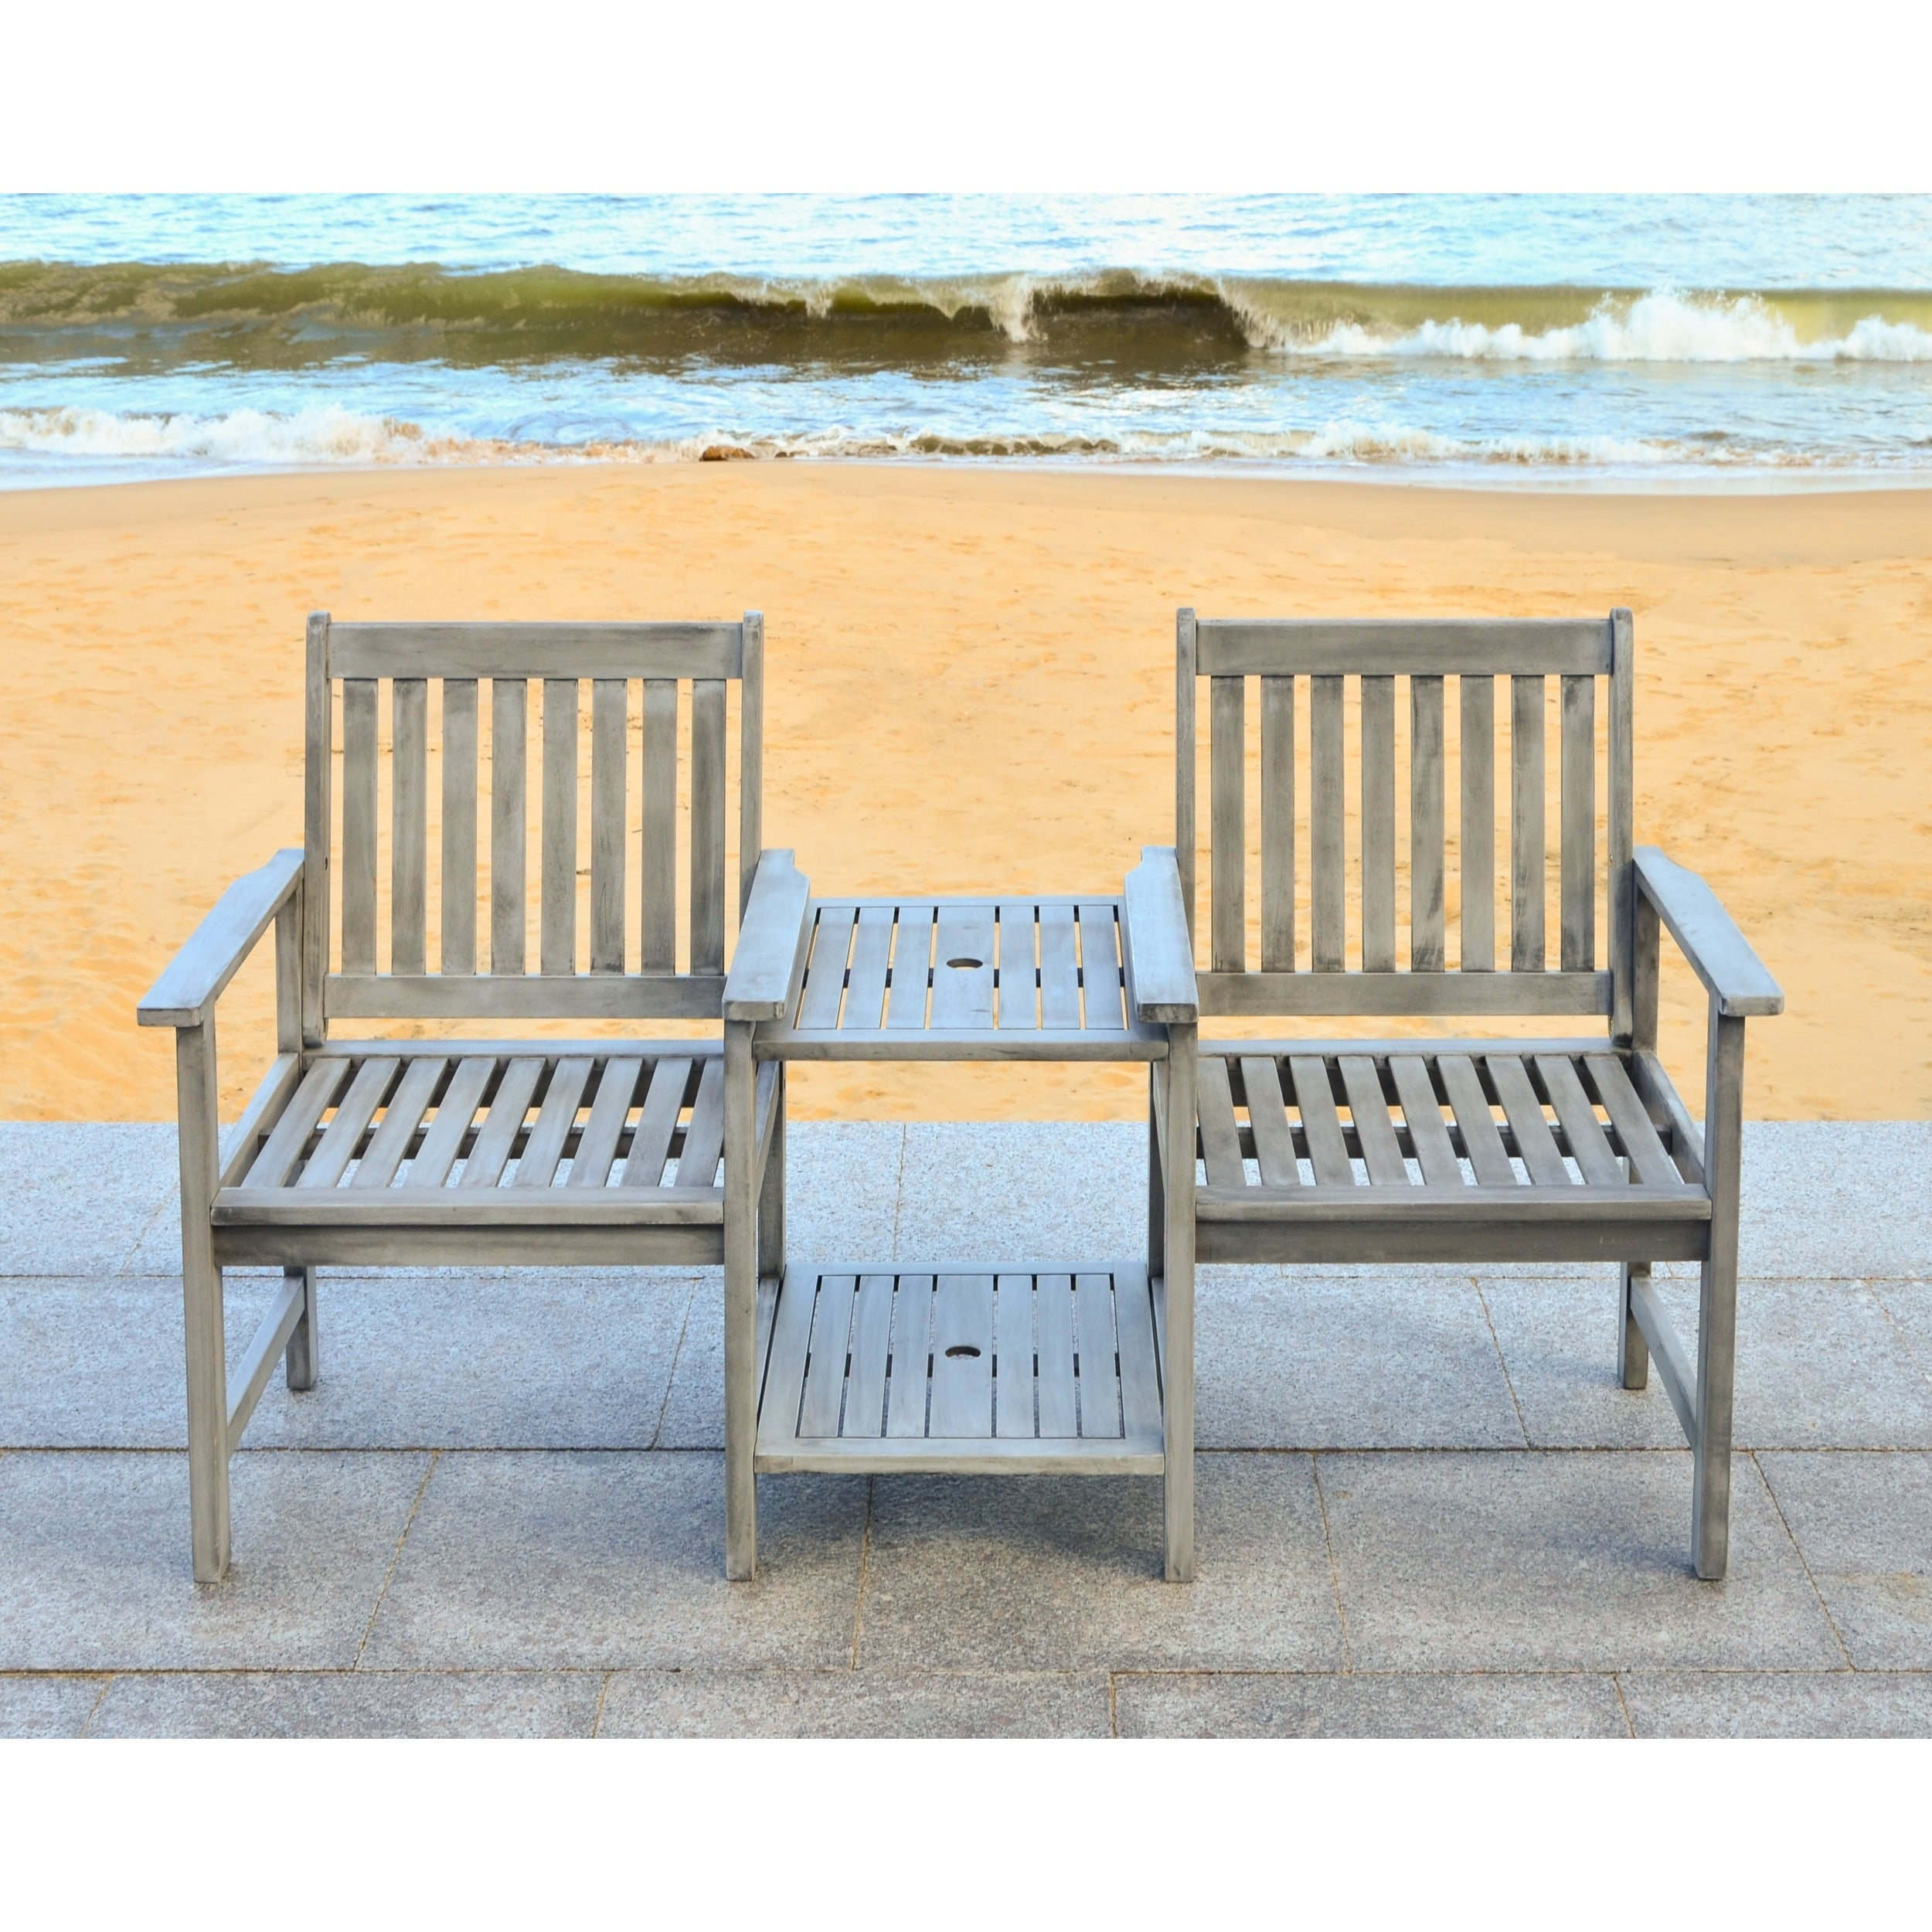 Safavieh Outdoor Living Brea Grey Twin Seat Bench - Free Shipping ...